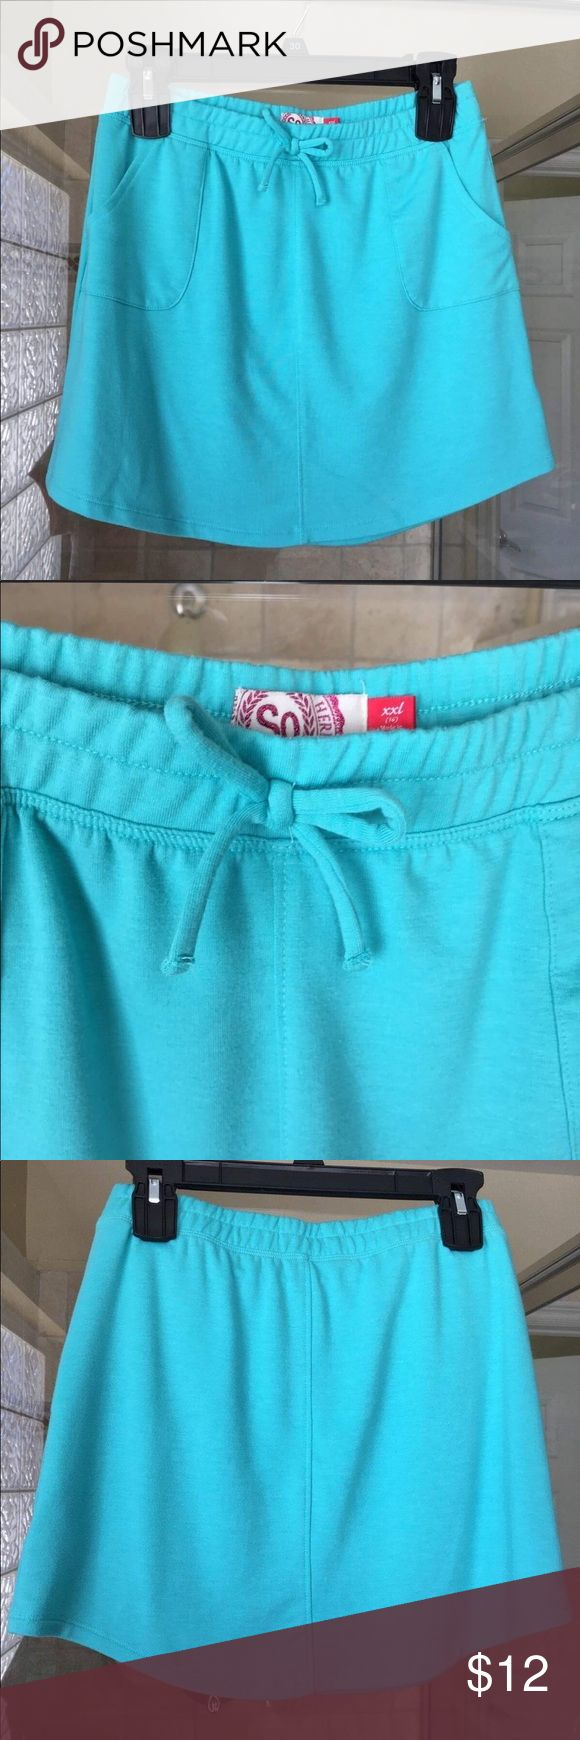 Girls SO Turquoise Size 16 Tie-Front Skater Skirt Girls SO Size 16 Tie-Front Fre...